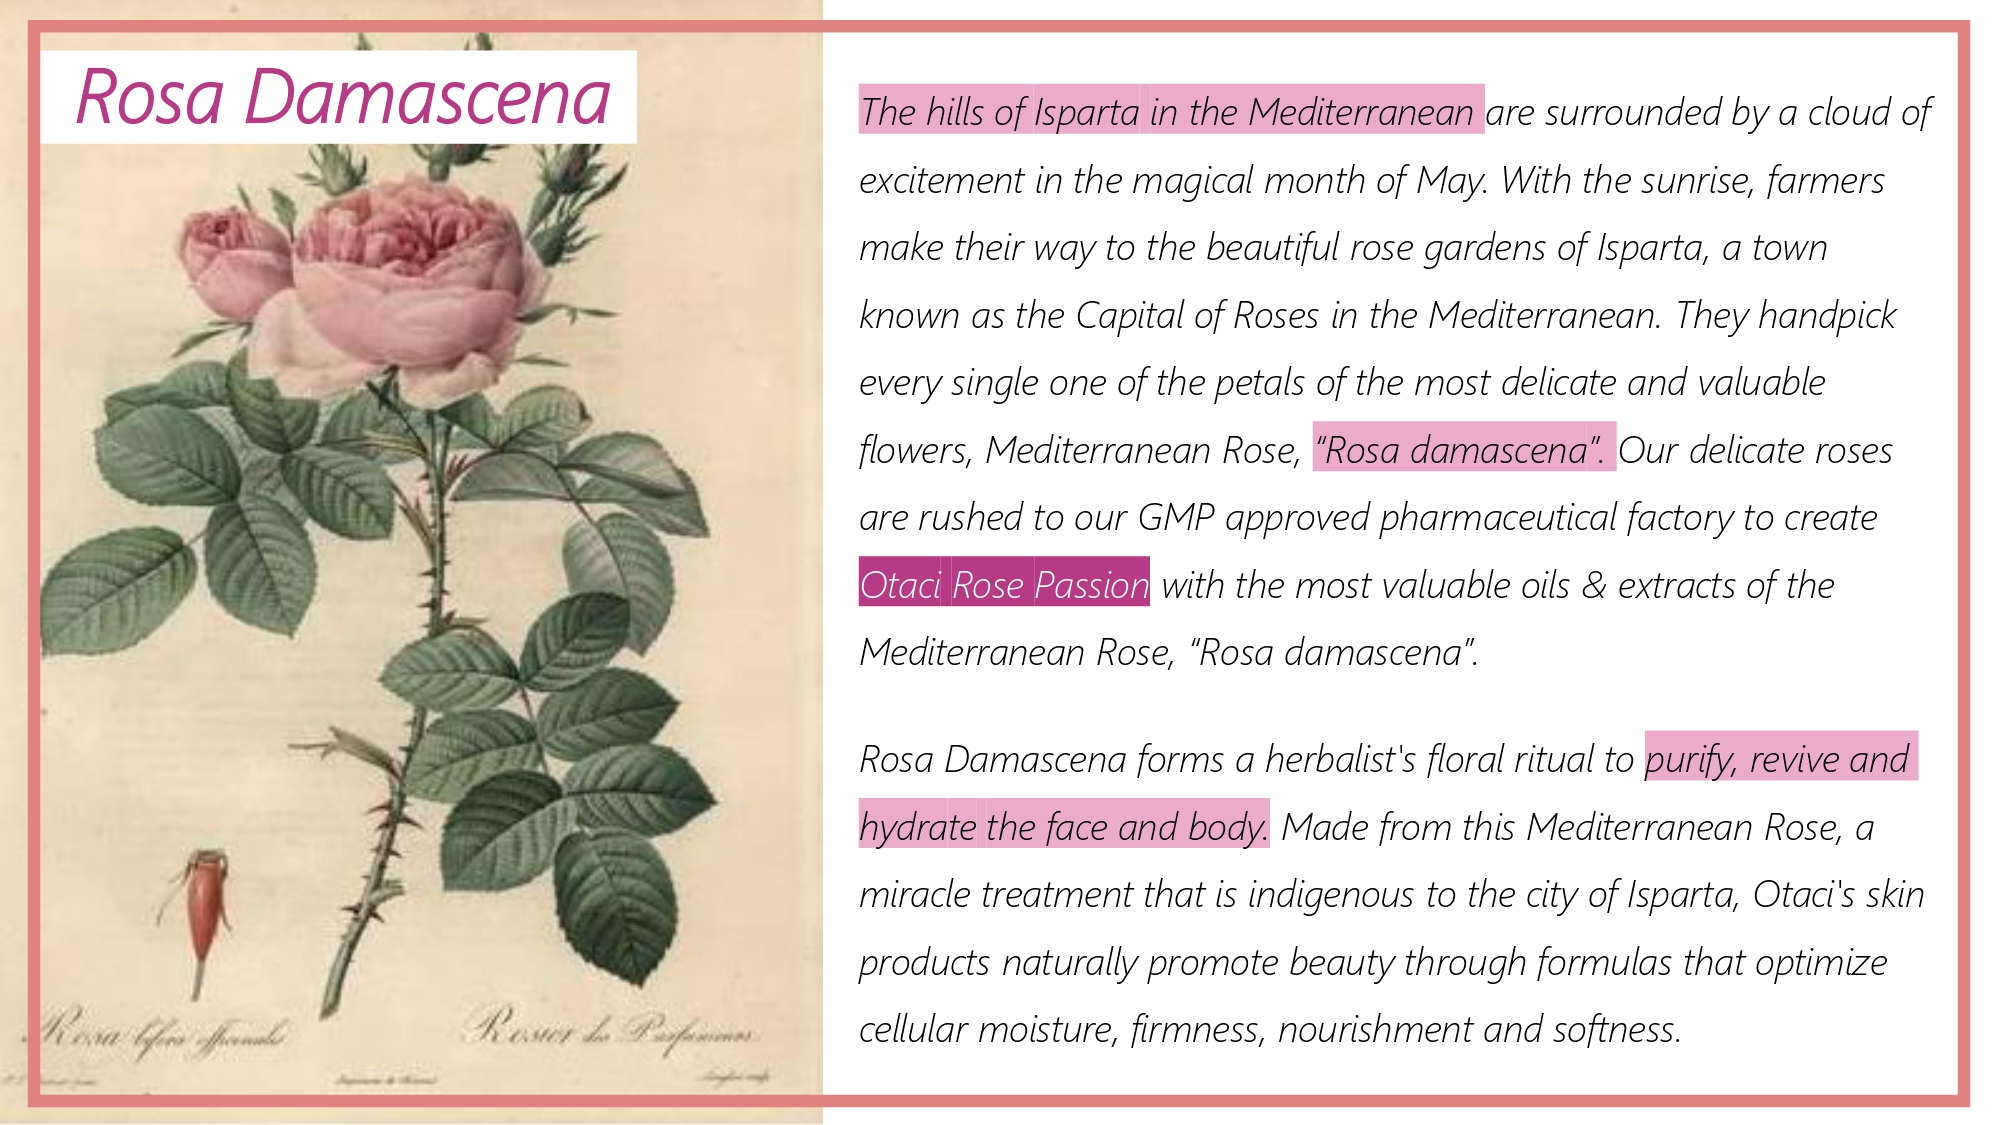 Otaci Rosa Damascena natural rose water